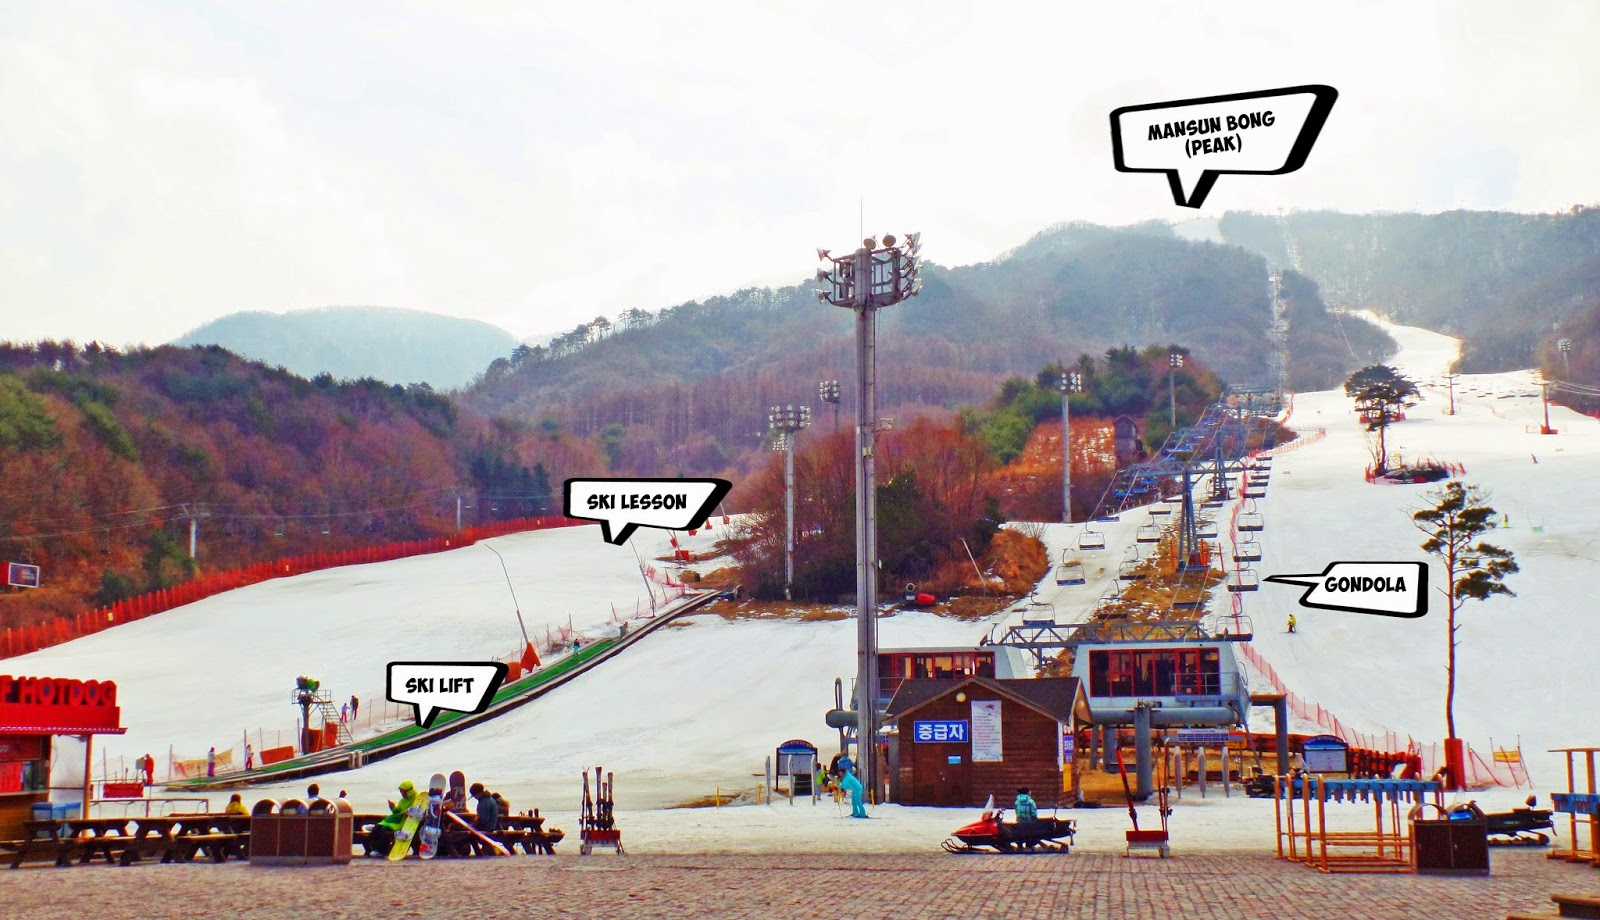 Muju Ski Resort - Mansun House 만선하우스 | meheartseoul.blogspot.com